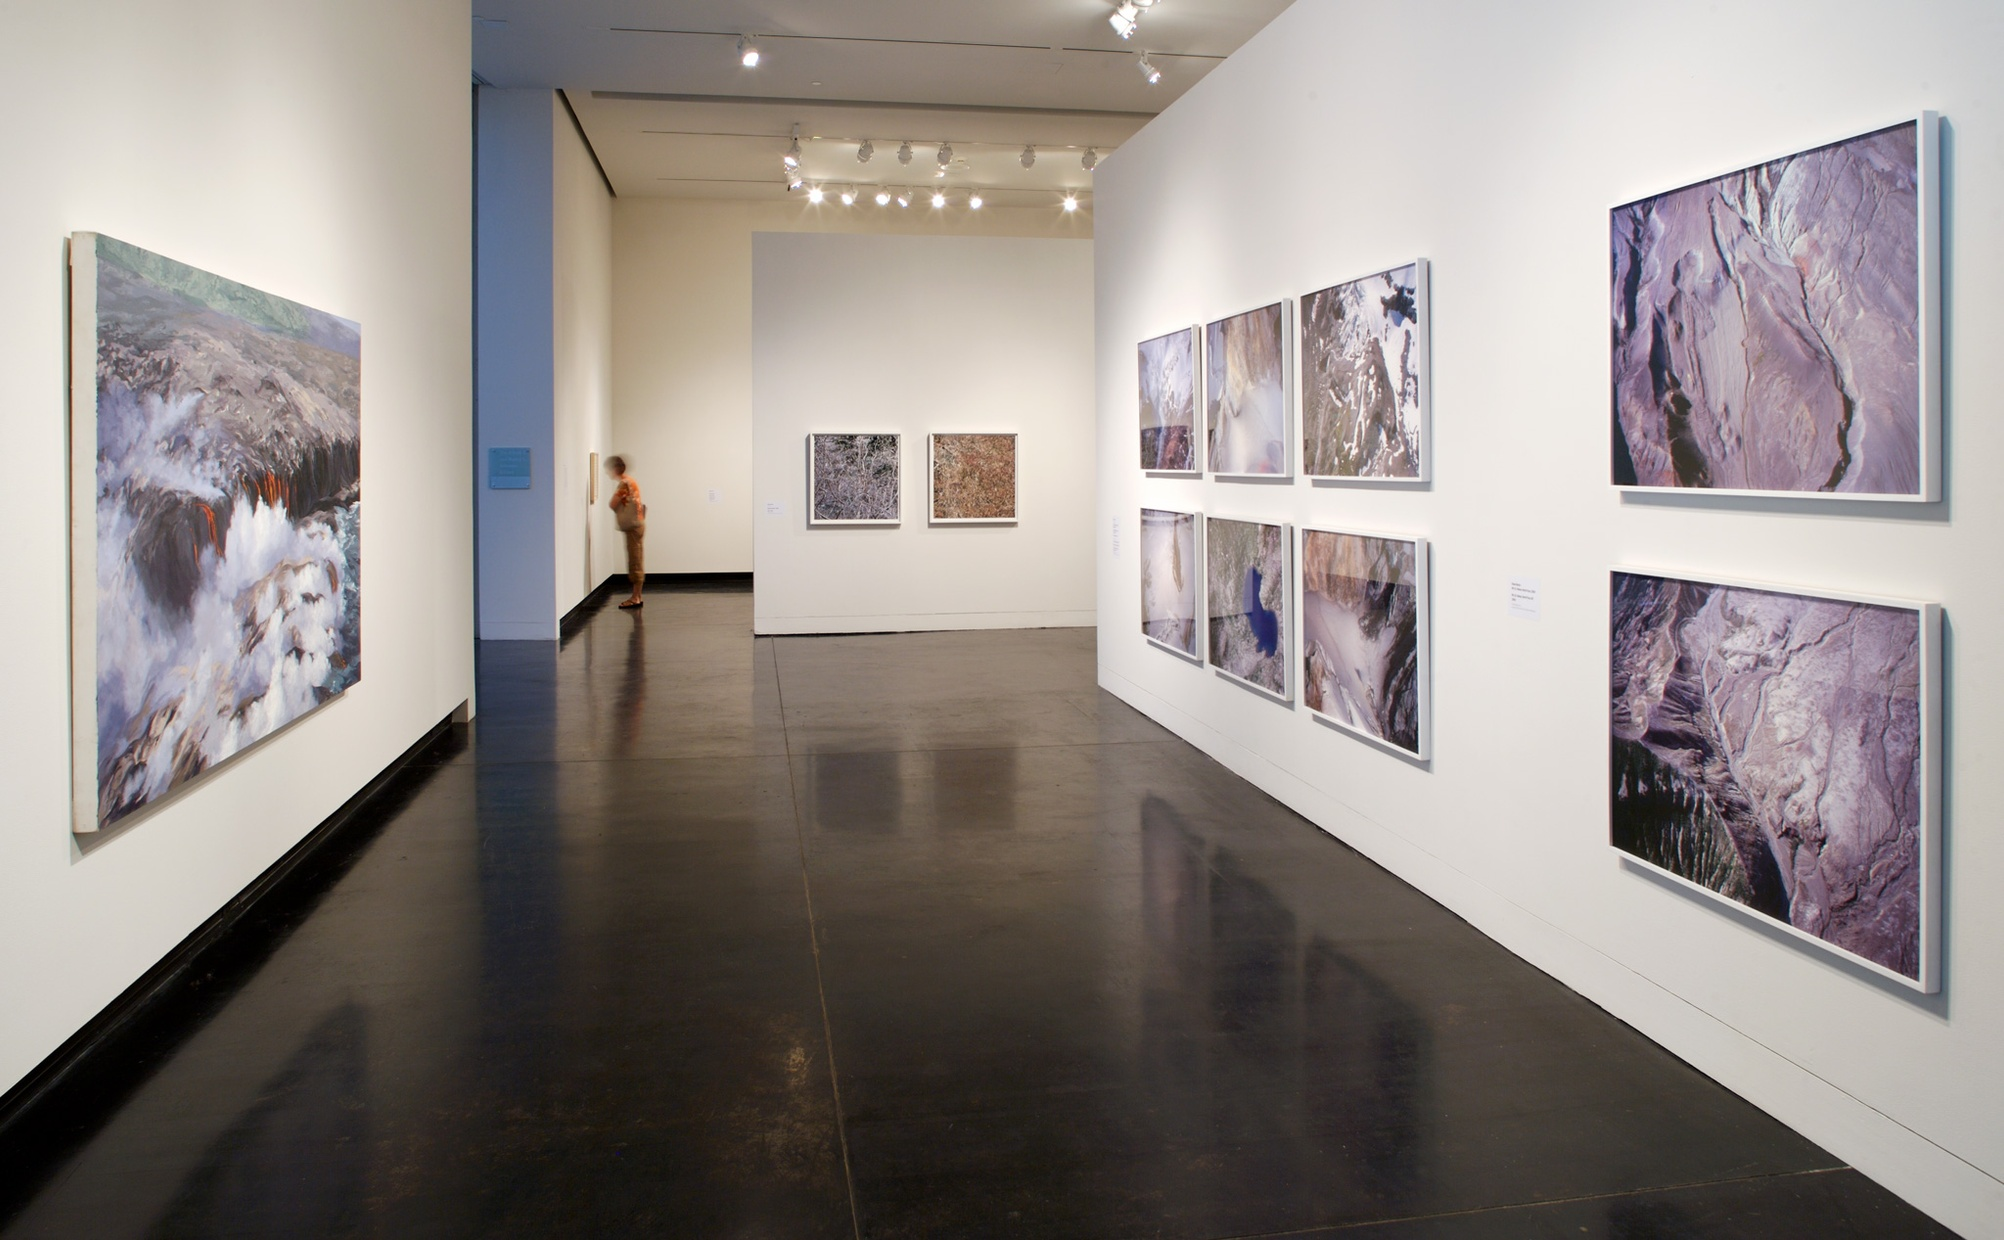 Framed photographs of geographic scenes hang on white walls in a gallery space.